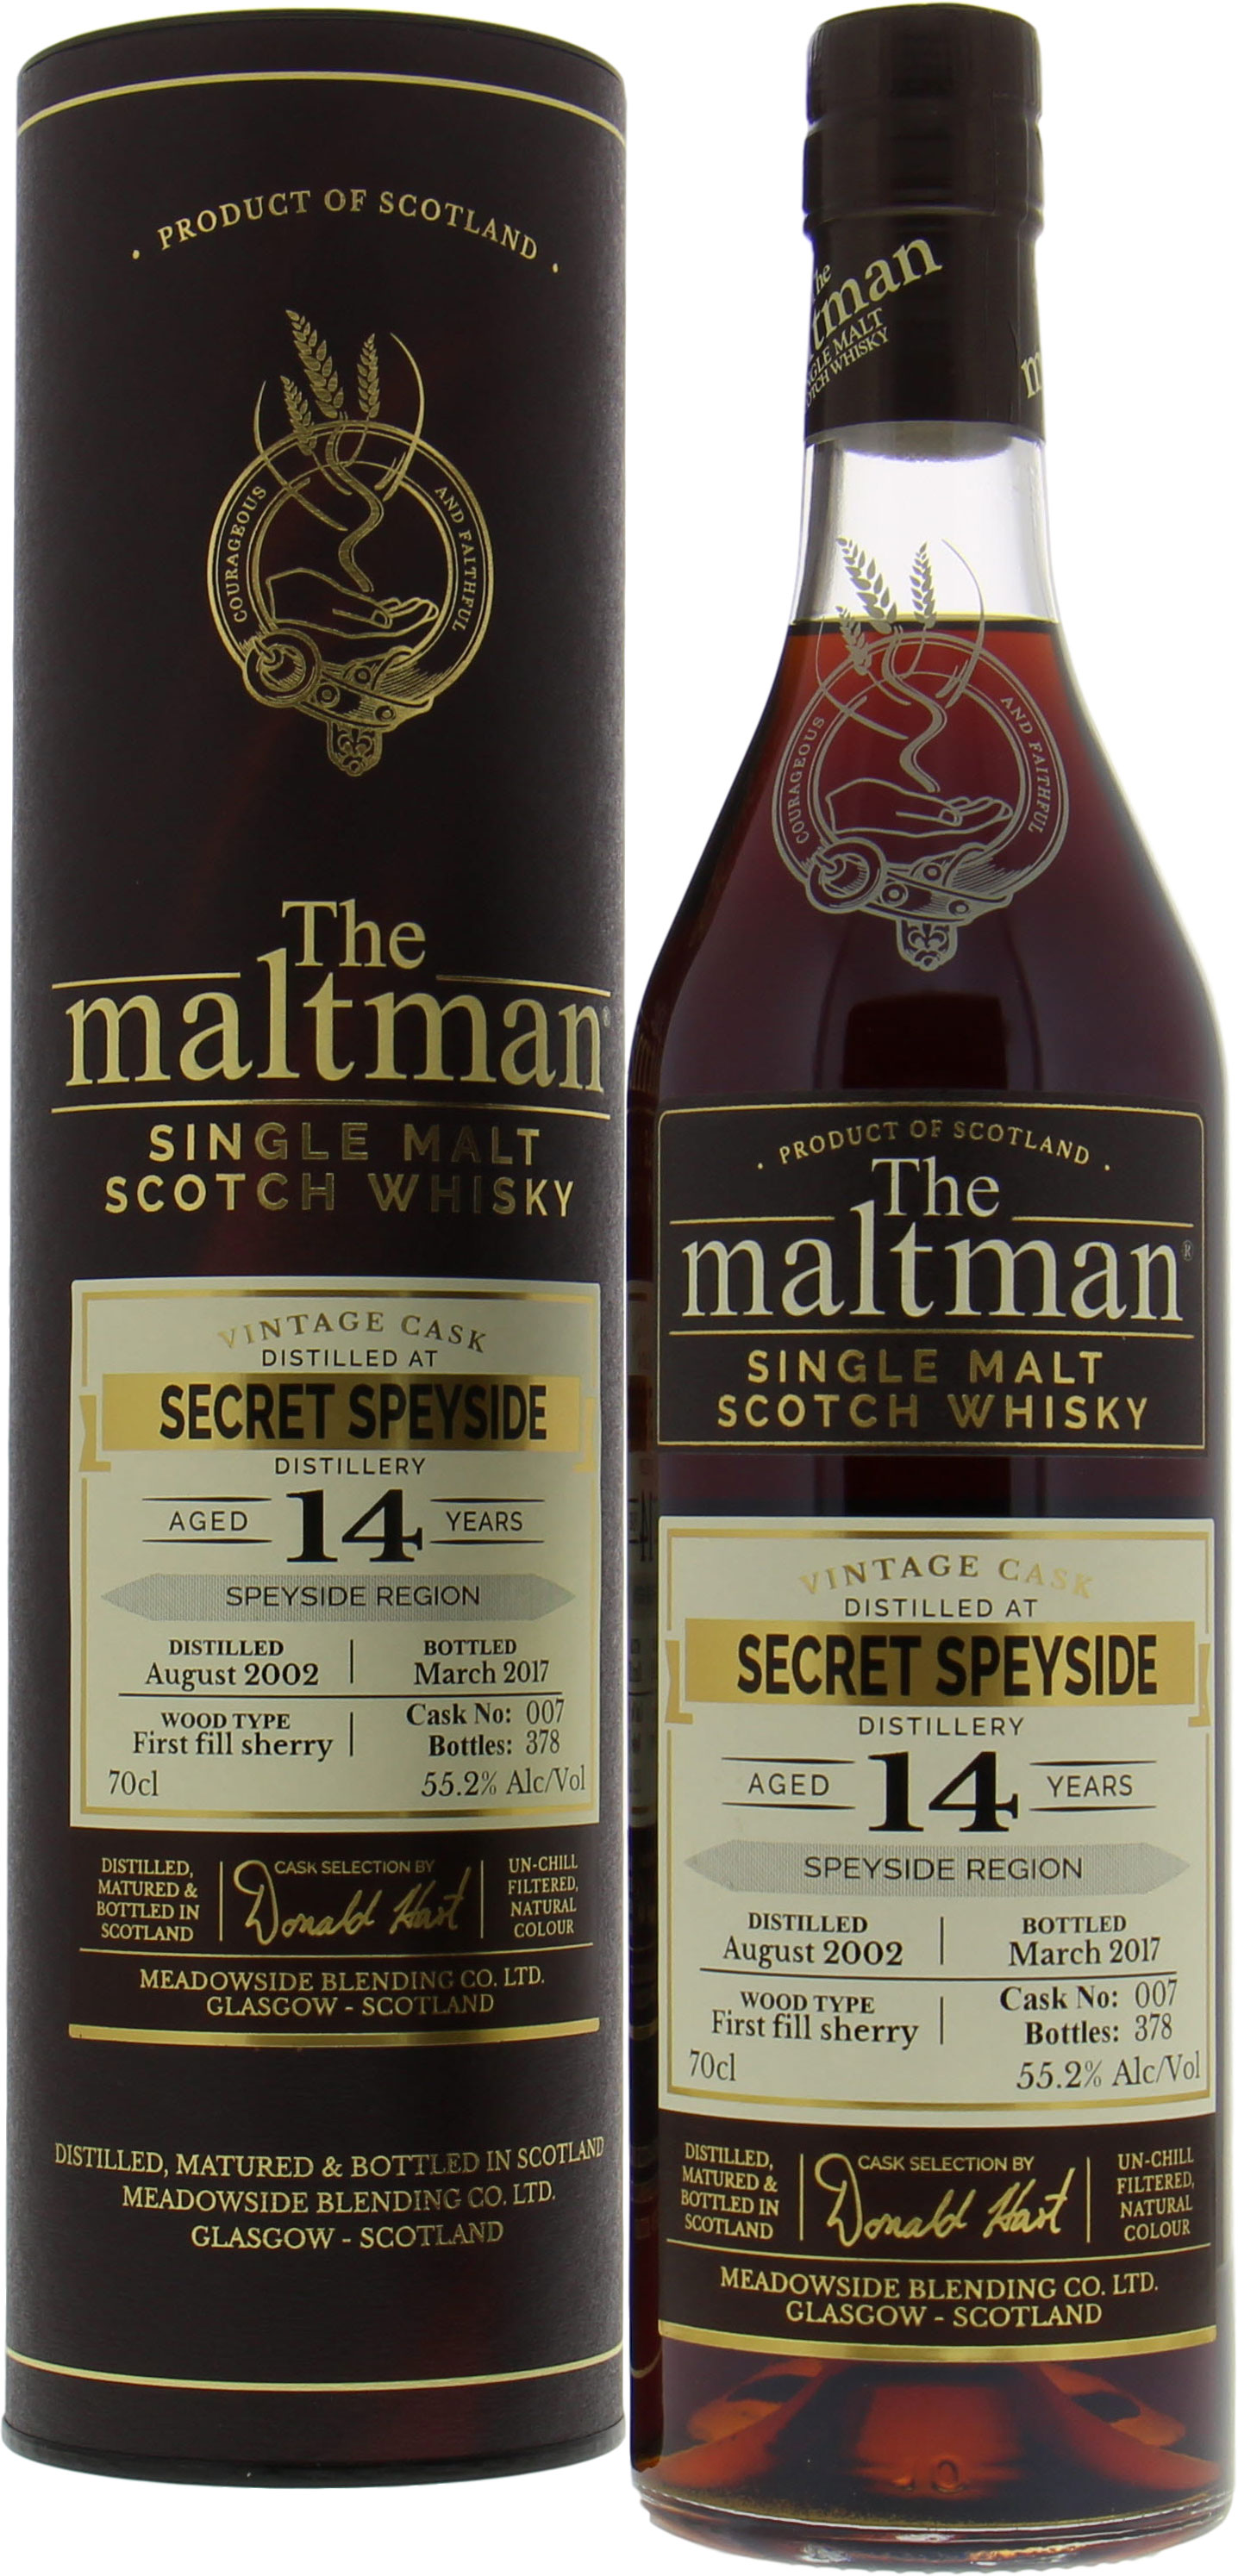 Speyside Region - Secret Speyside 14 Years Old The Maltman Cask 007 55.2% 2002